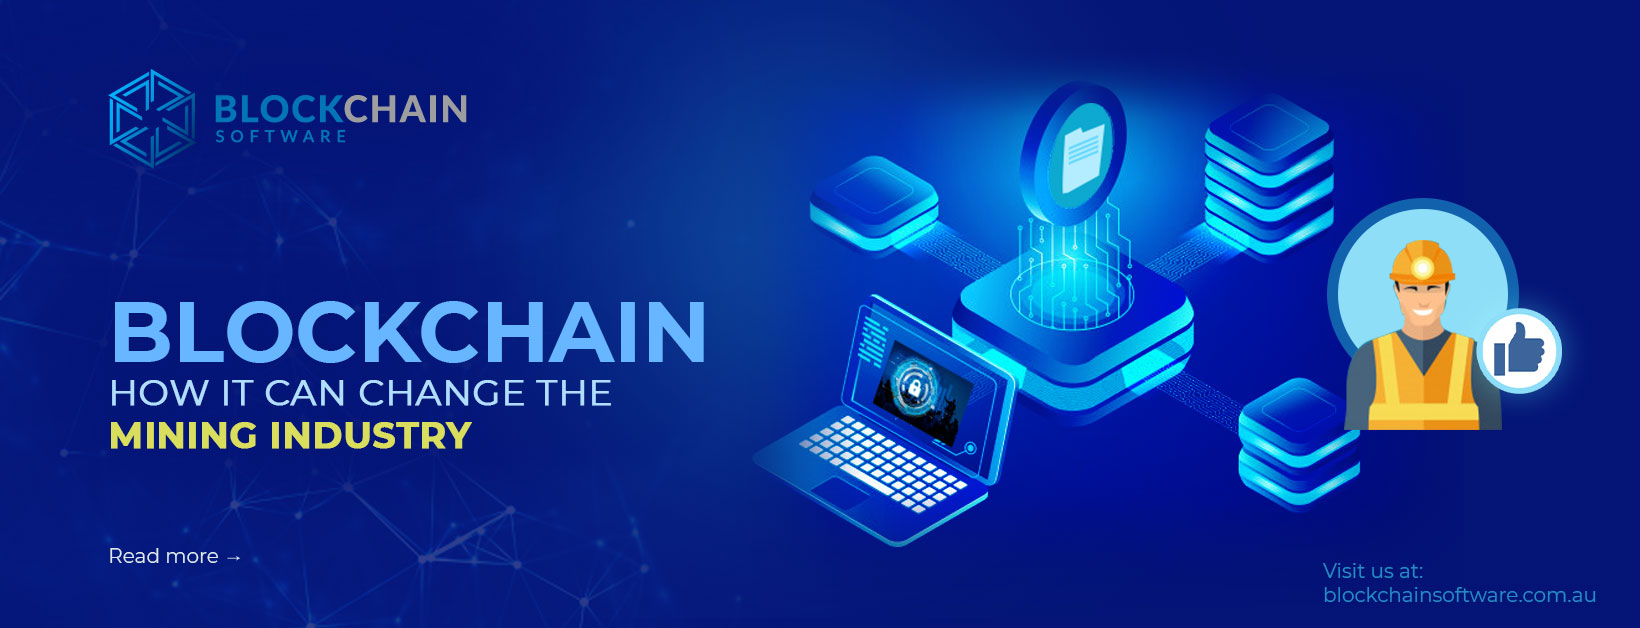 Blockchain Technology and How it Can Change The Mining Industry